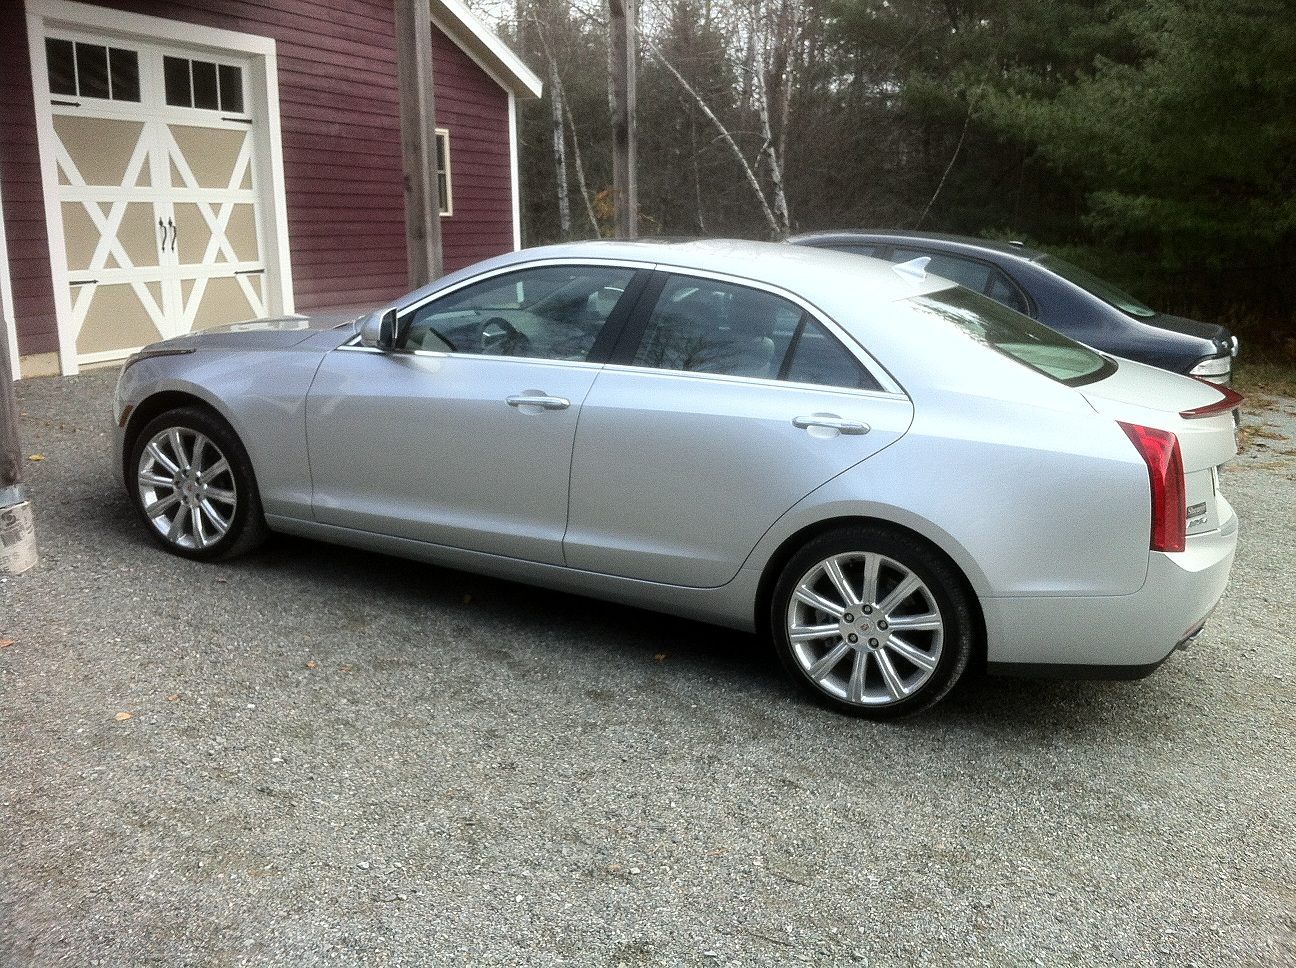 2013 Metallic Silver Cadillac ATS 2.0T AWD Automatic picture, mods, upgrades